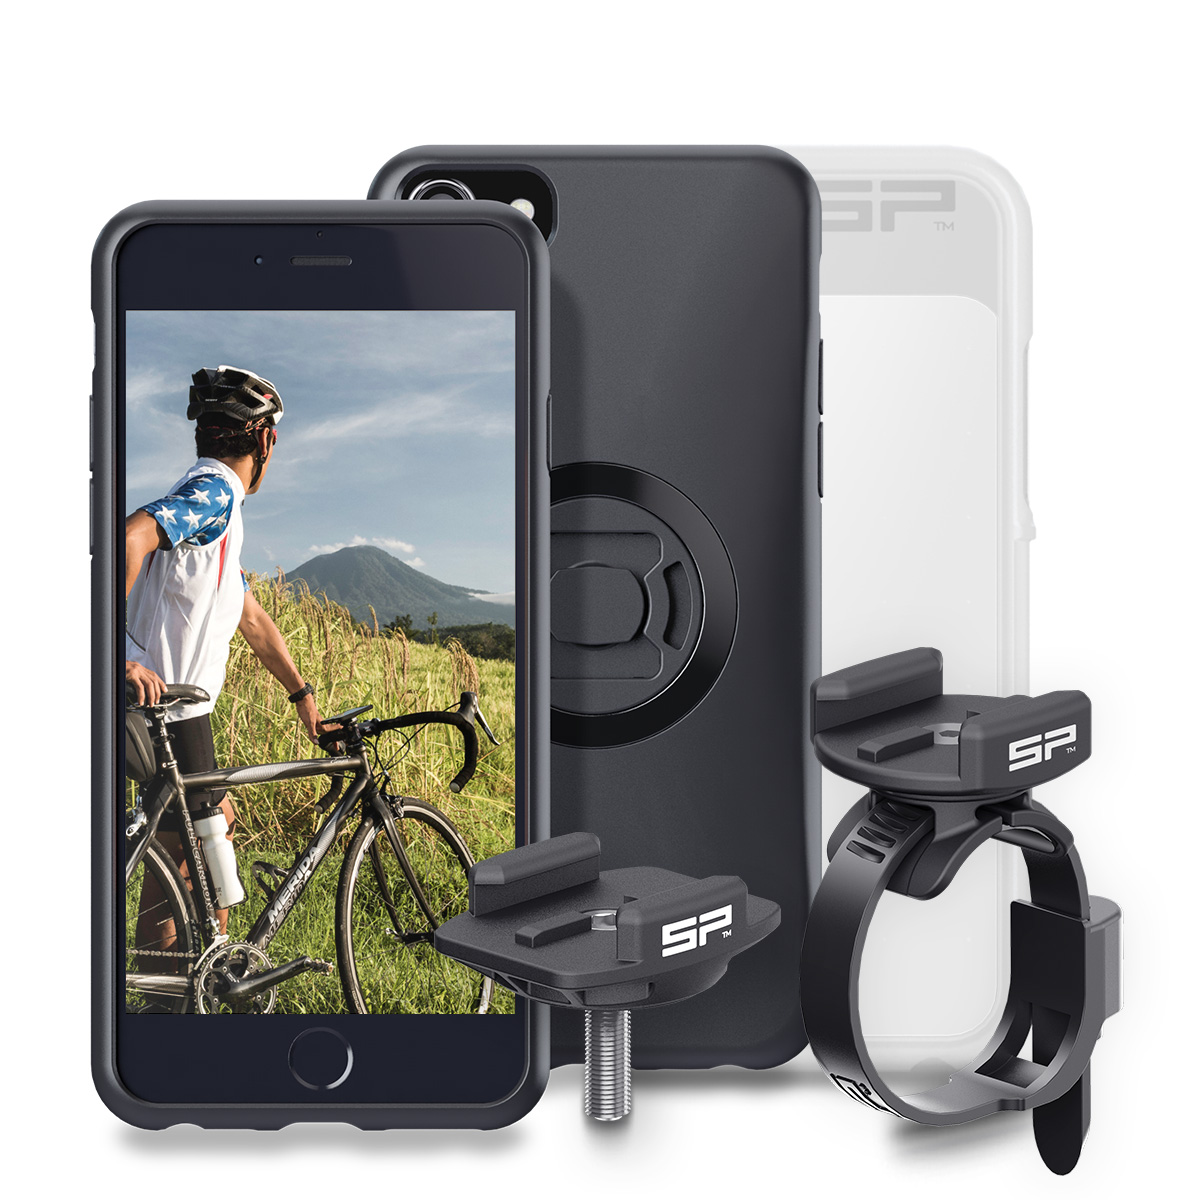 SP Connect SP Bike Bundle Samsung S7 edge